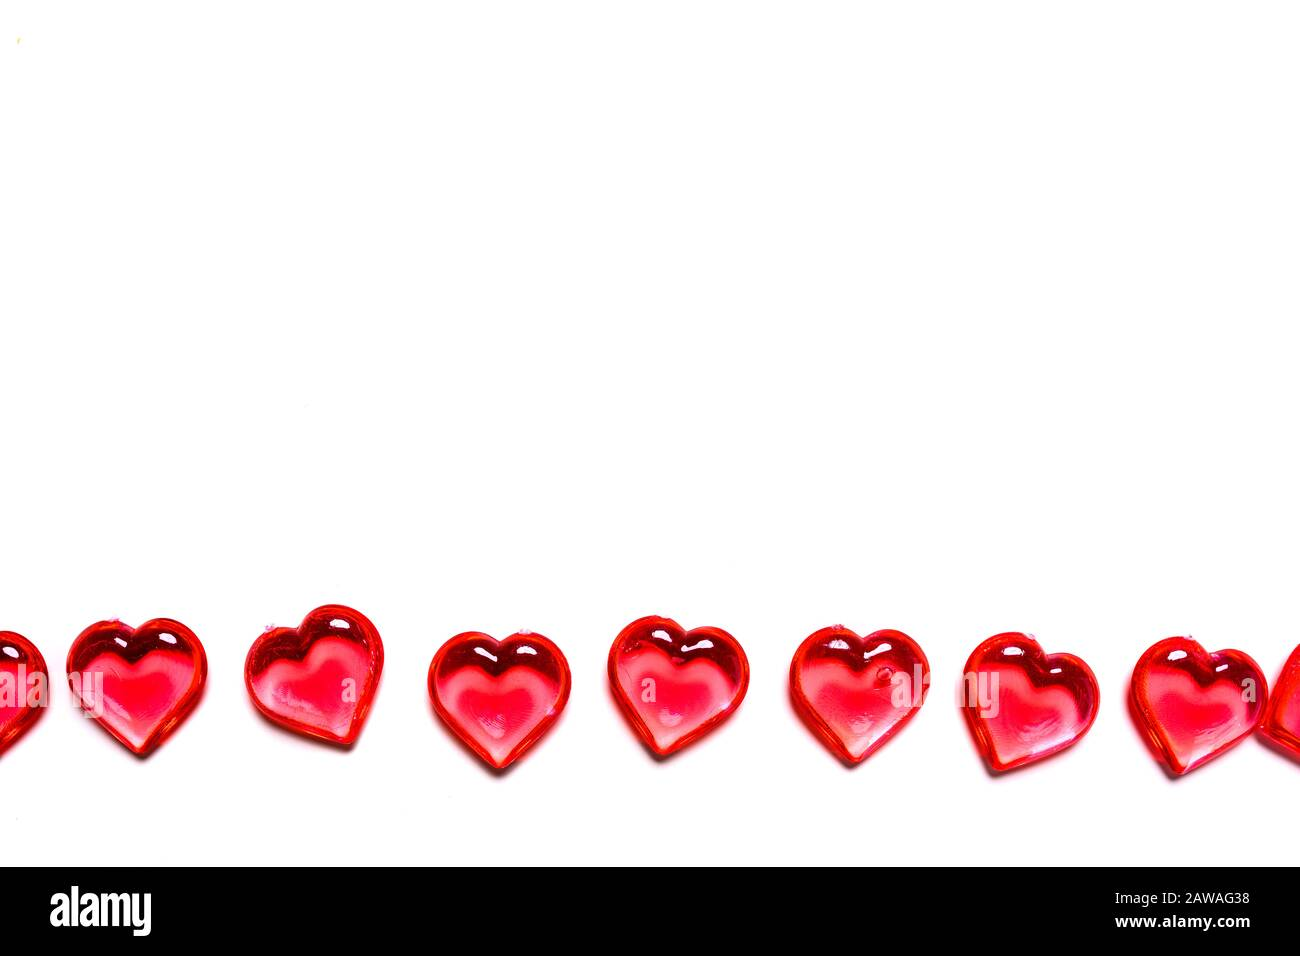 A group of red hearts on a white background with copy space. Valentine's day theme. Stock Photo